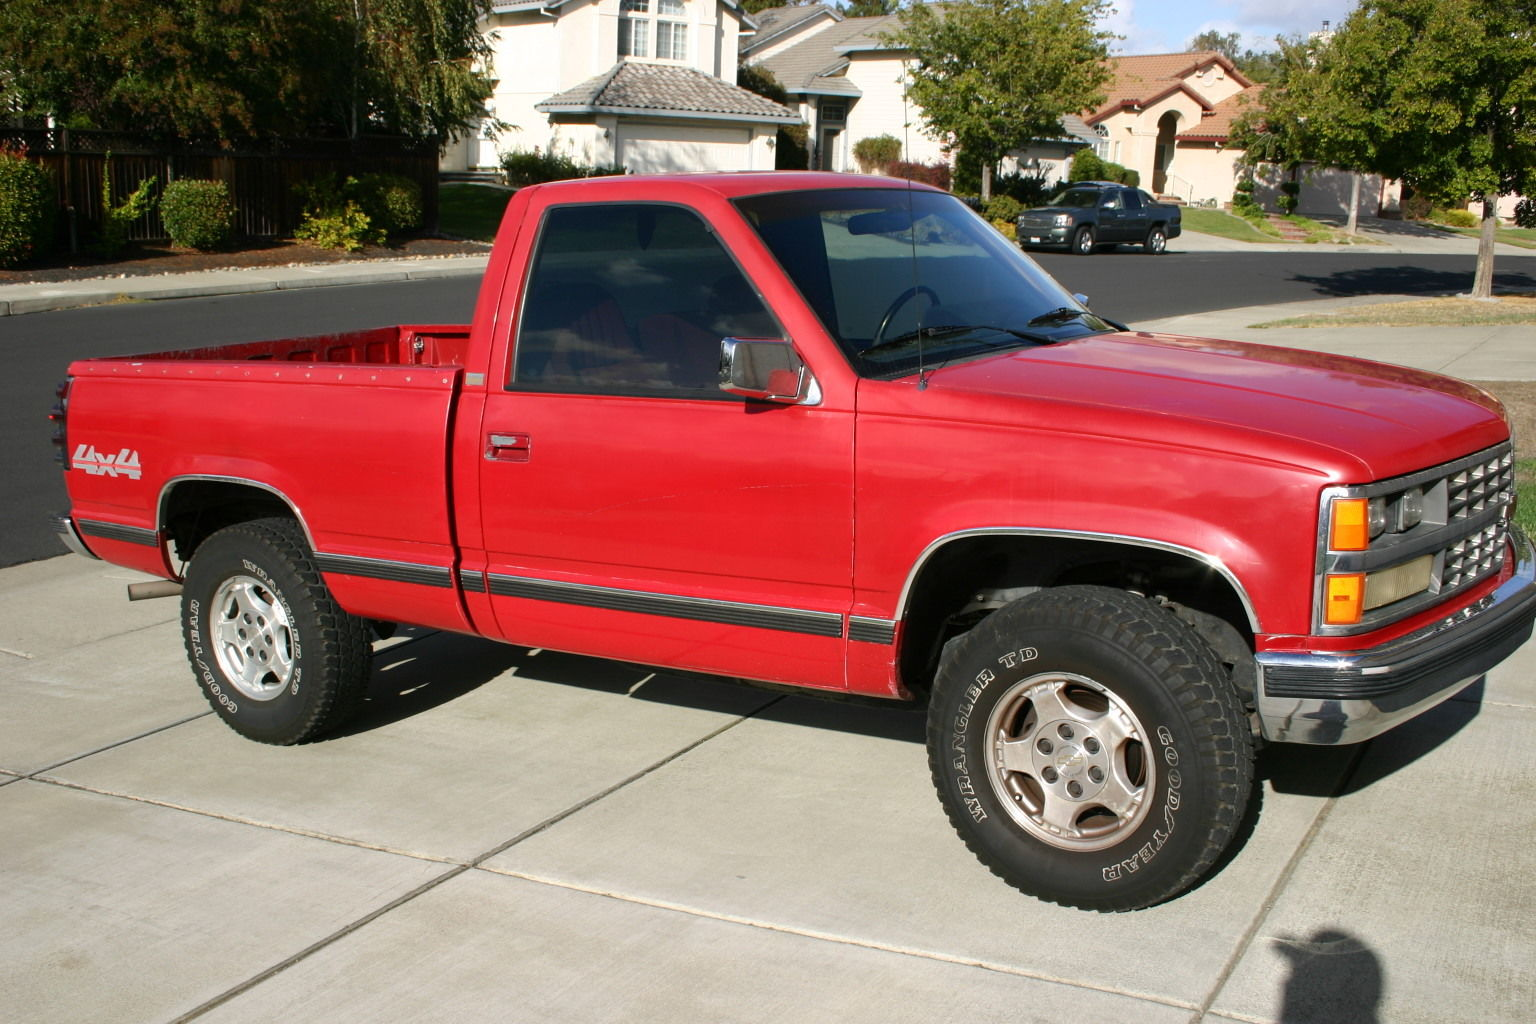 1989 chevy k1500 truck 4x4 silverado package classic chevrolet c k pickup 1500 1989 for sale. Black Bedroom Furniture Sets. Home Design Ideas